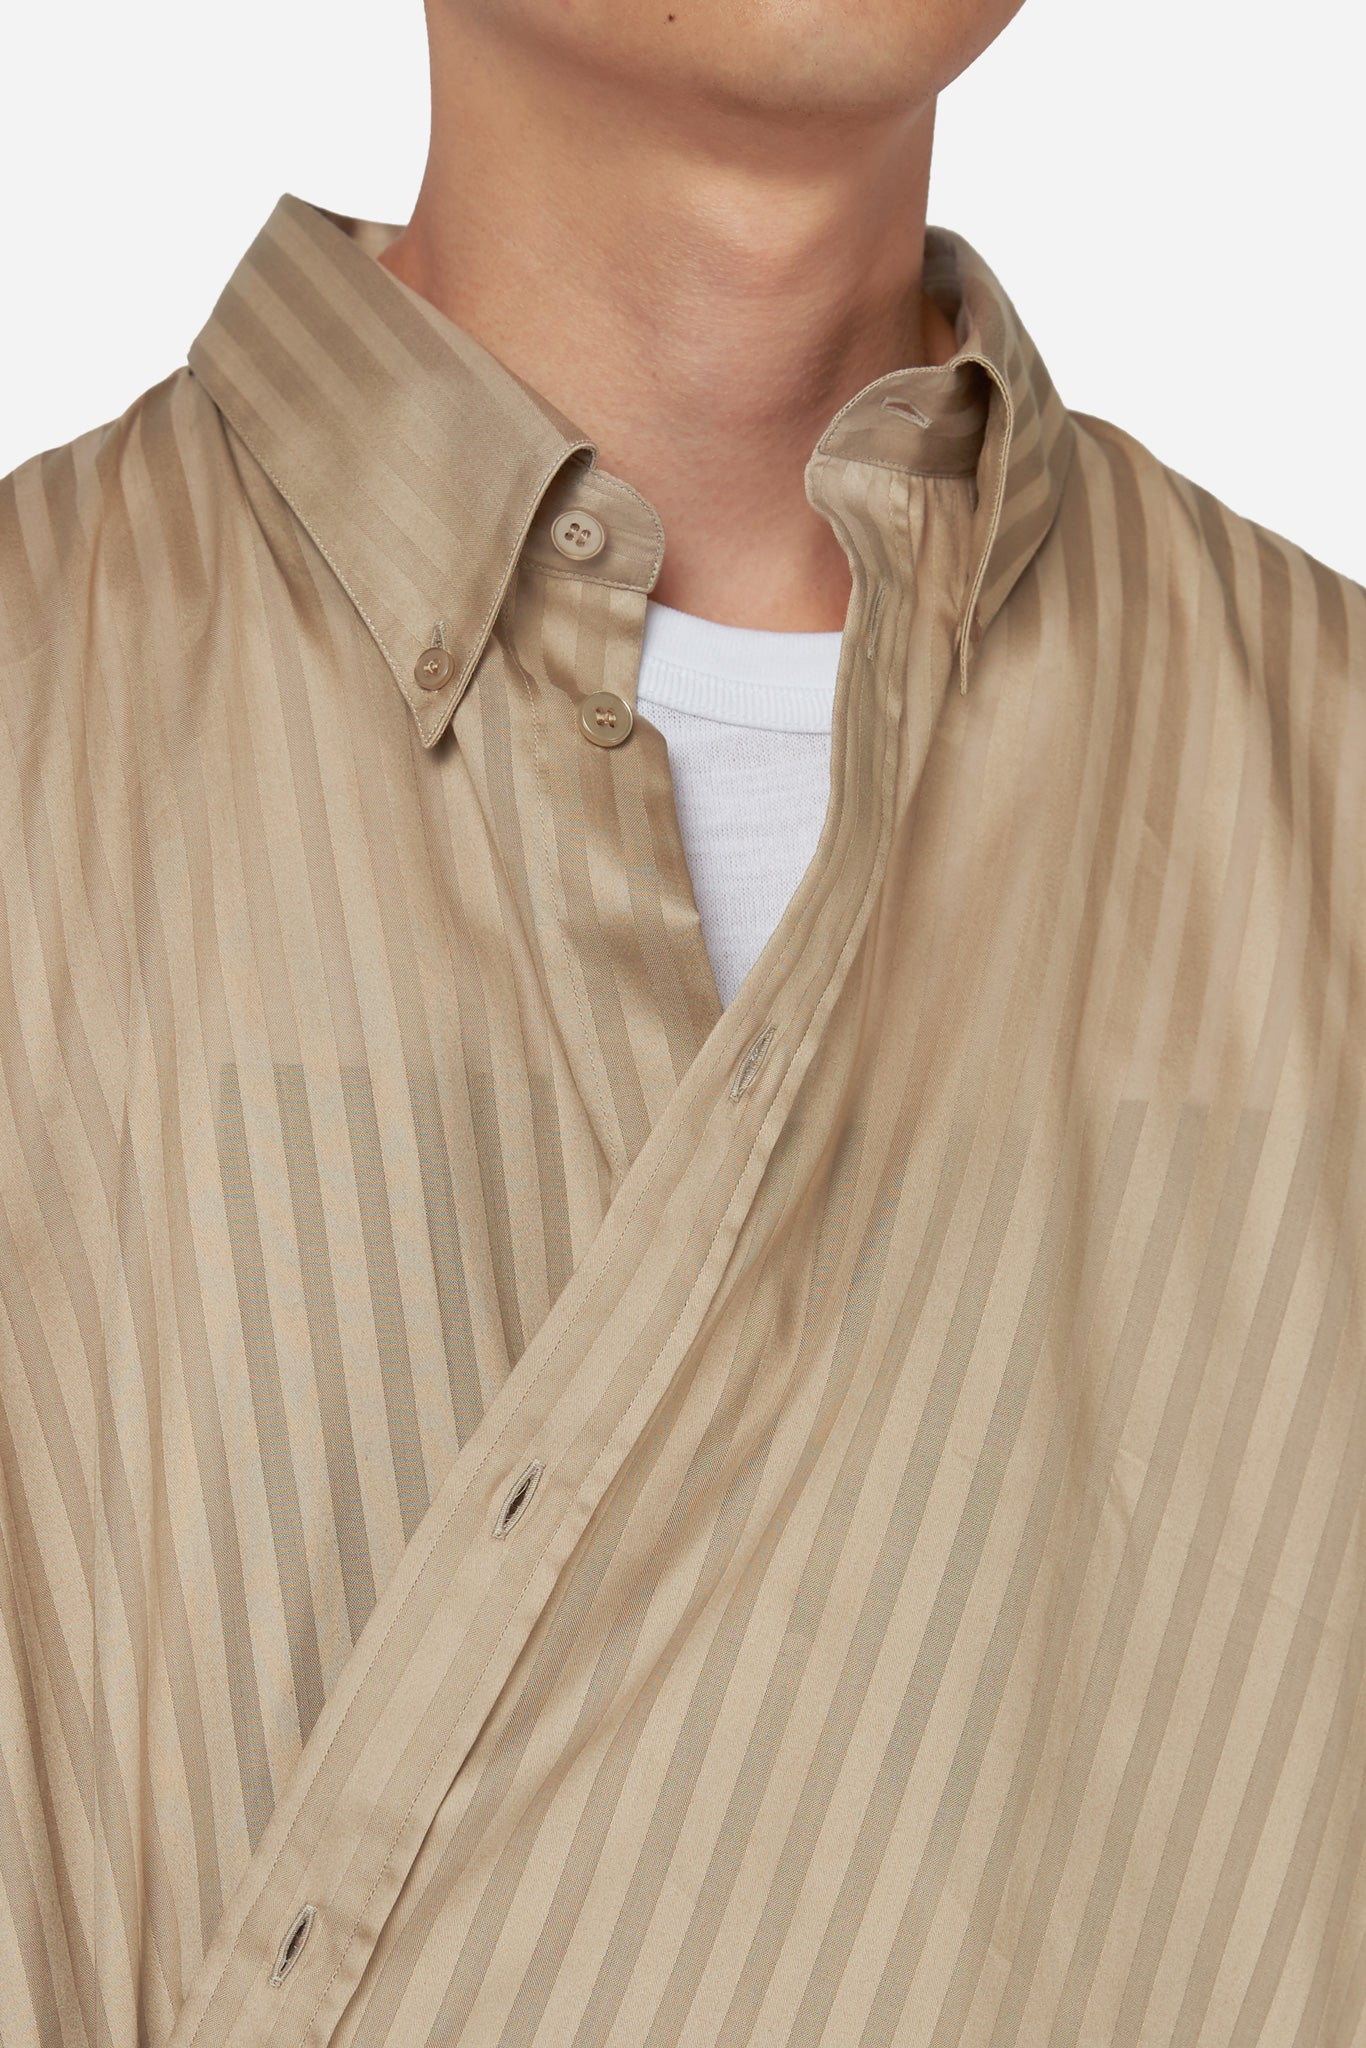 Wrap Shirt Silver Brown